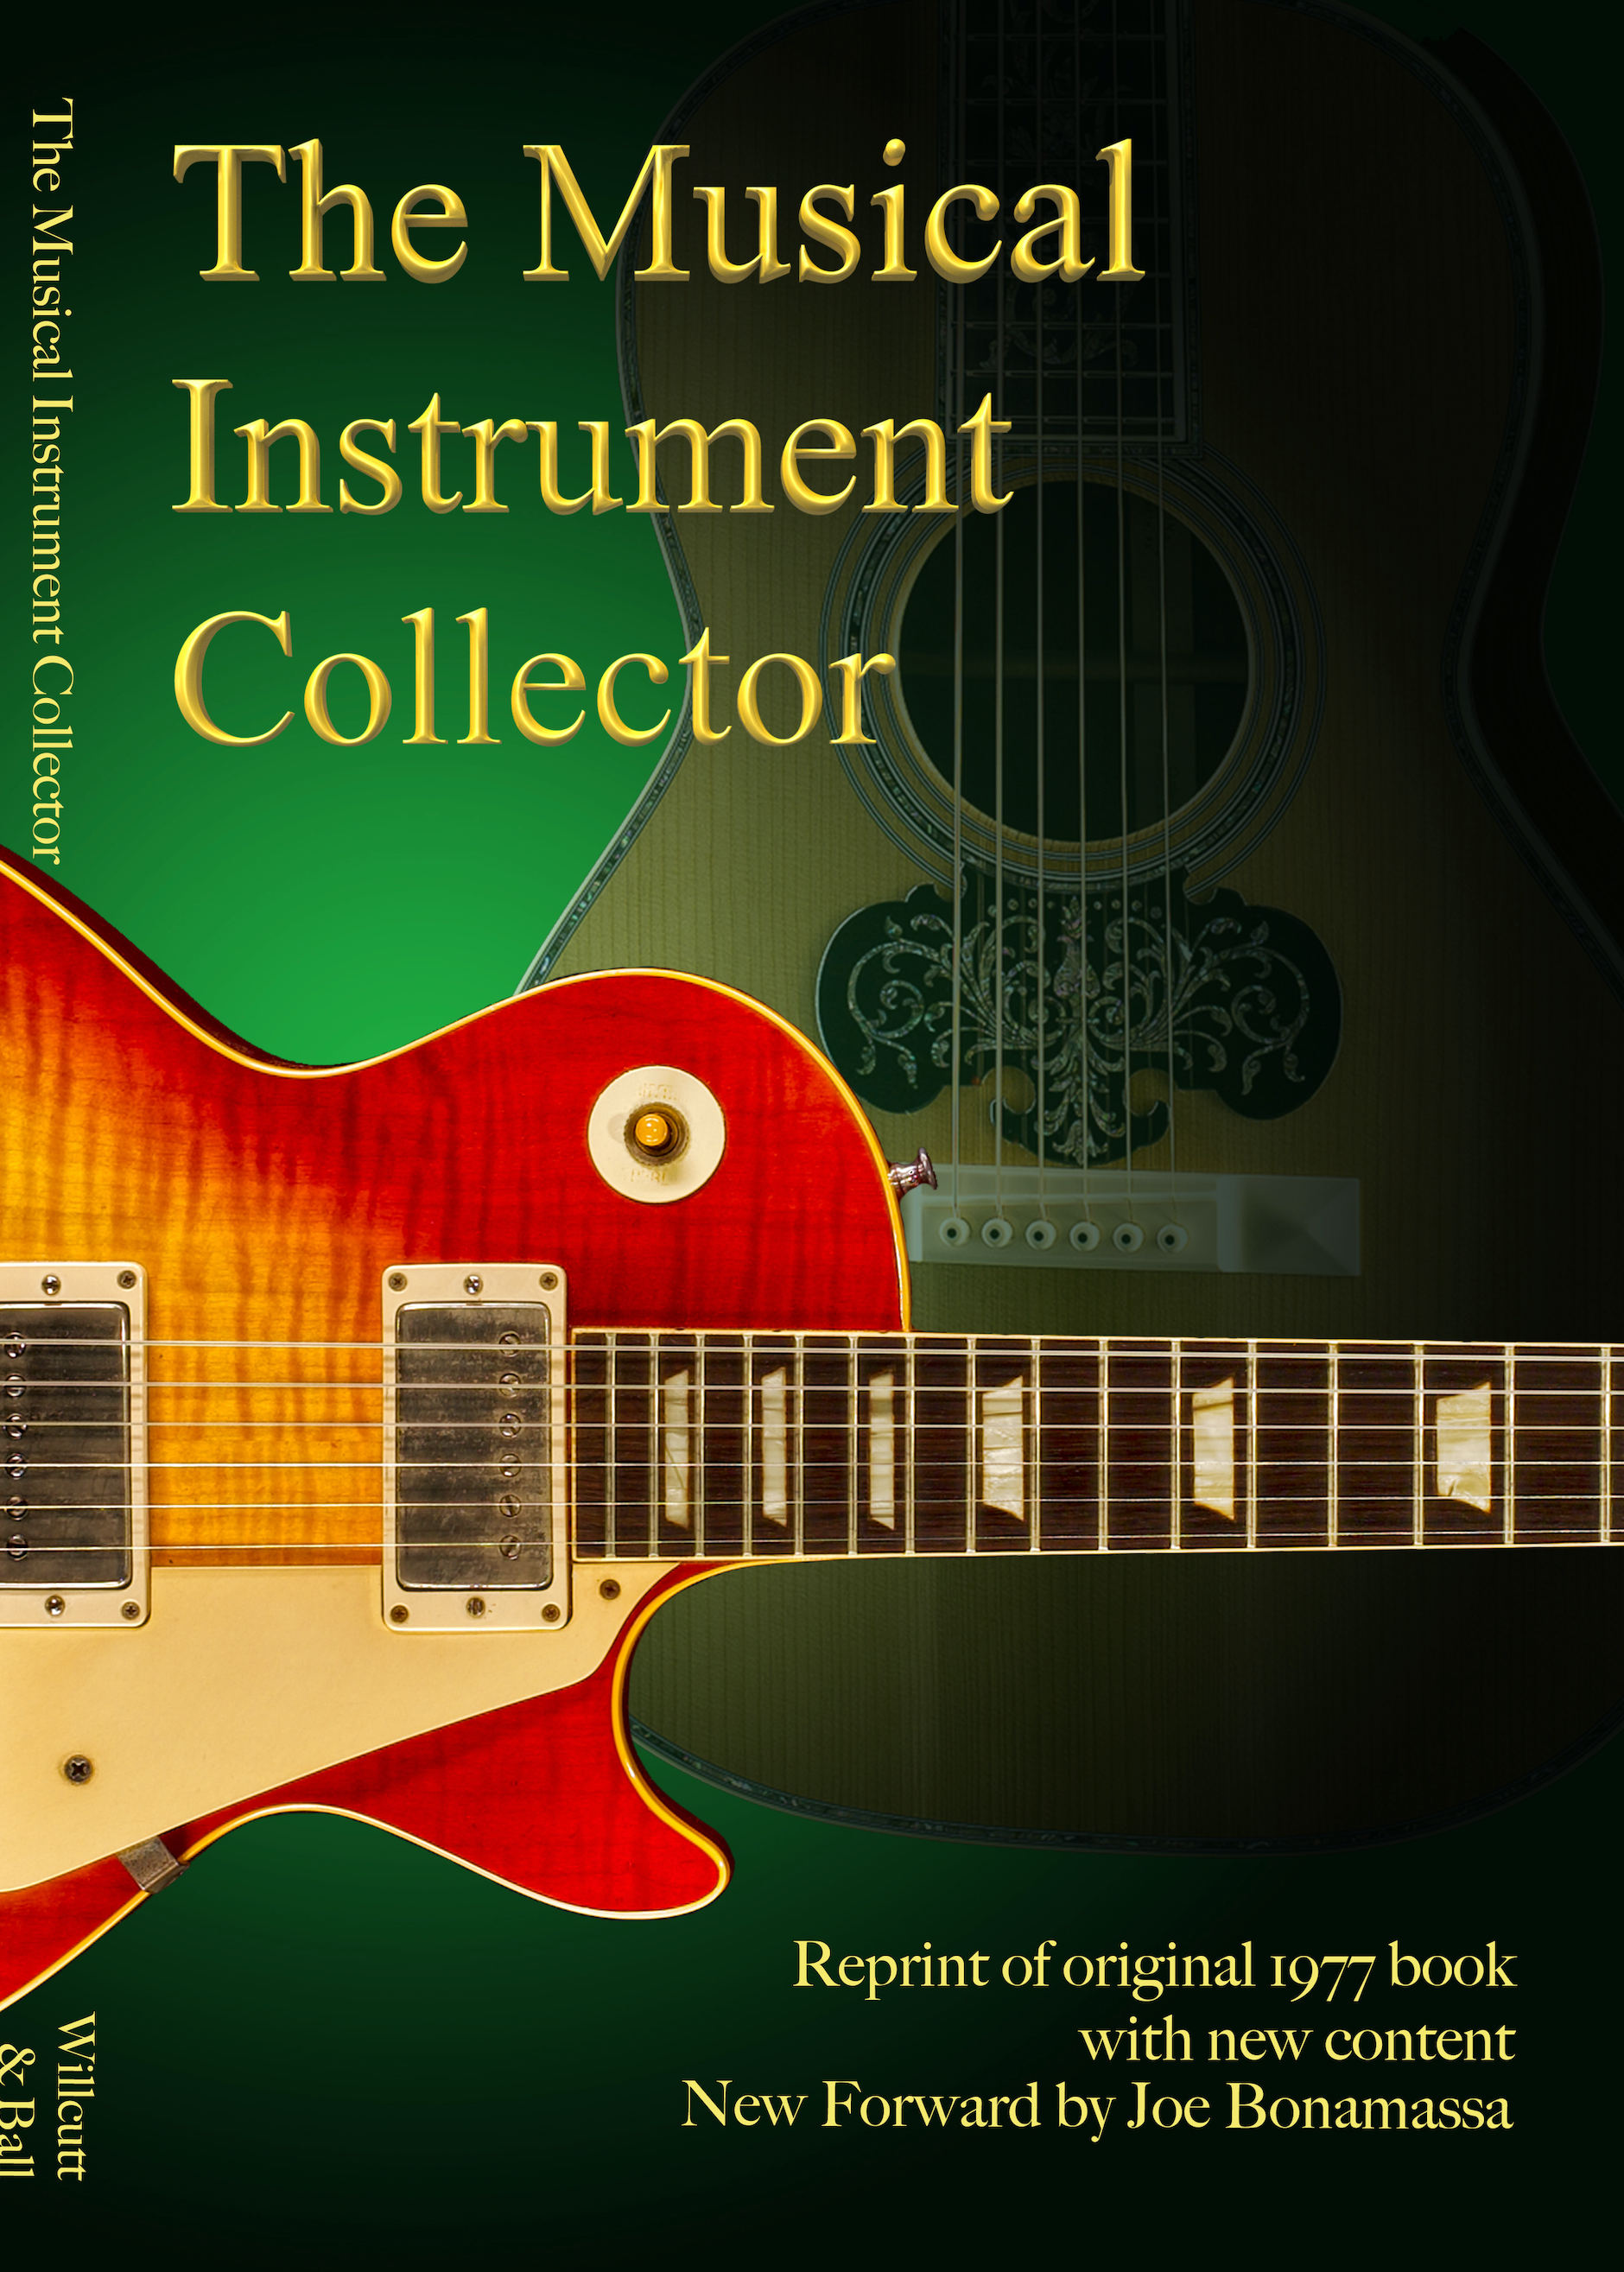 The Musical Instrument Collector by J. Robert Willcutt and Kenneth Ball - Paperback